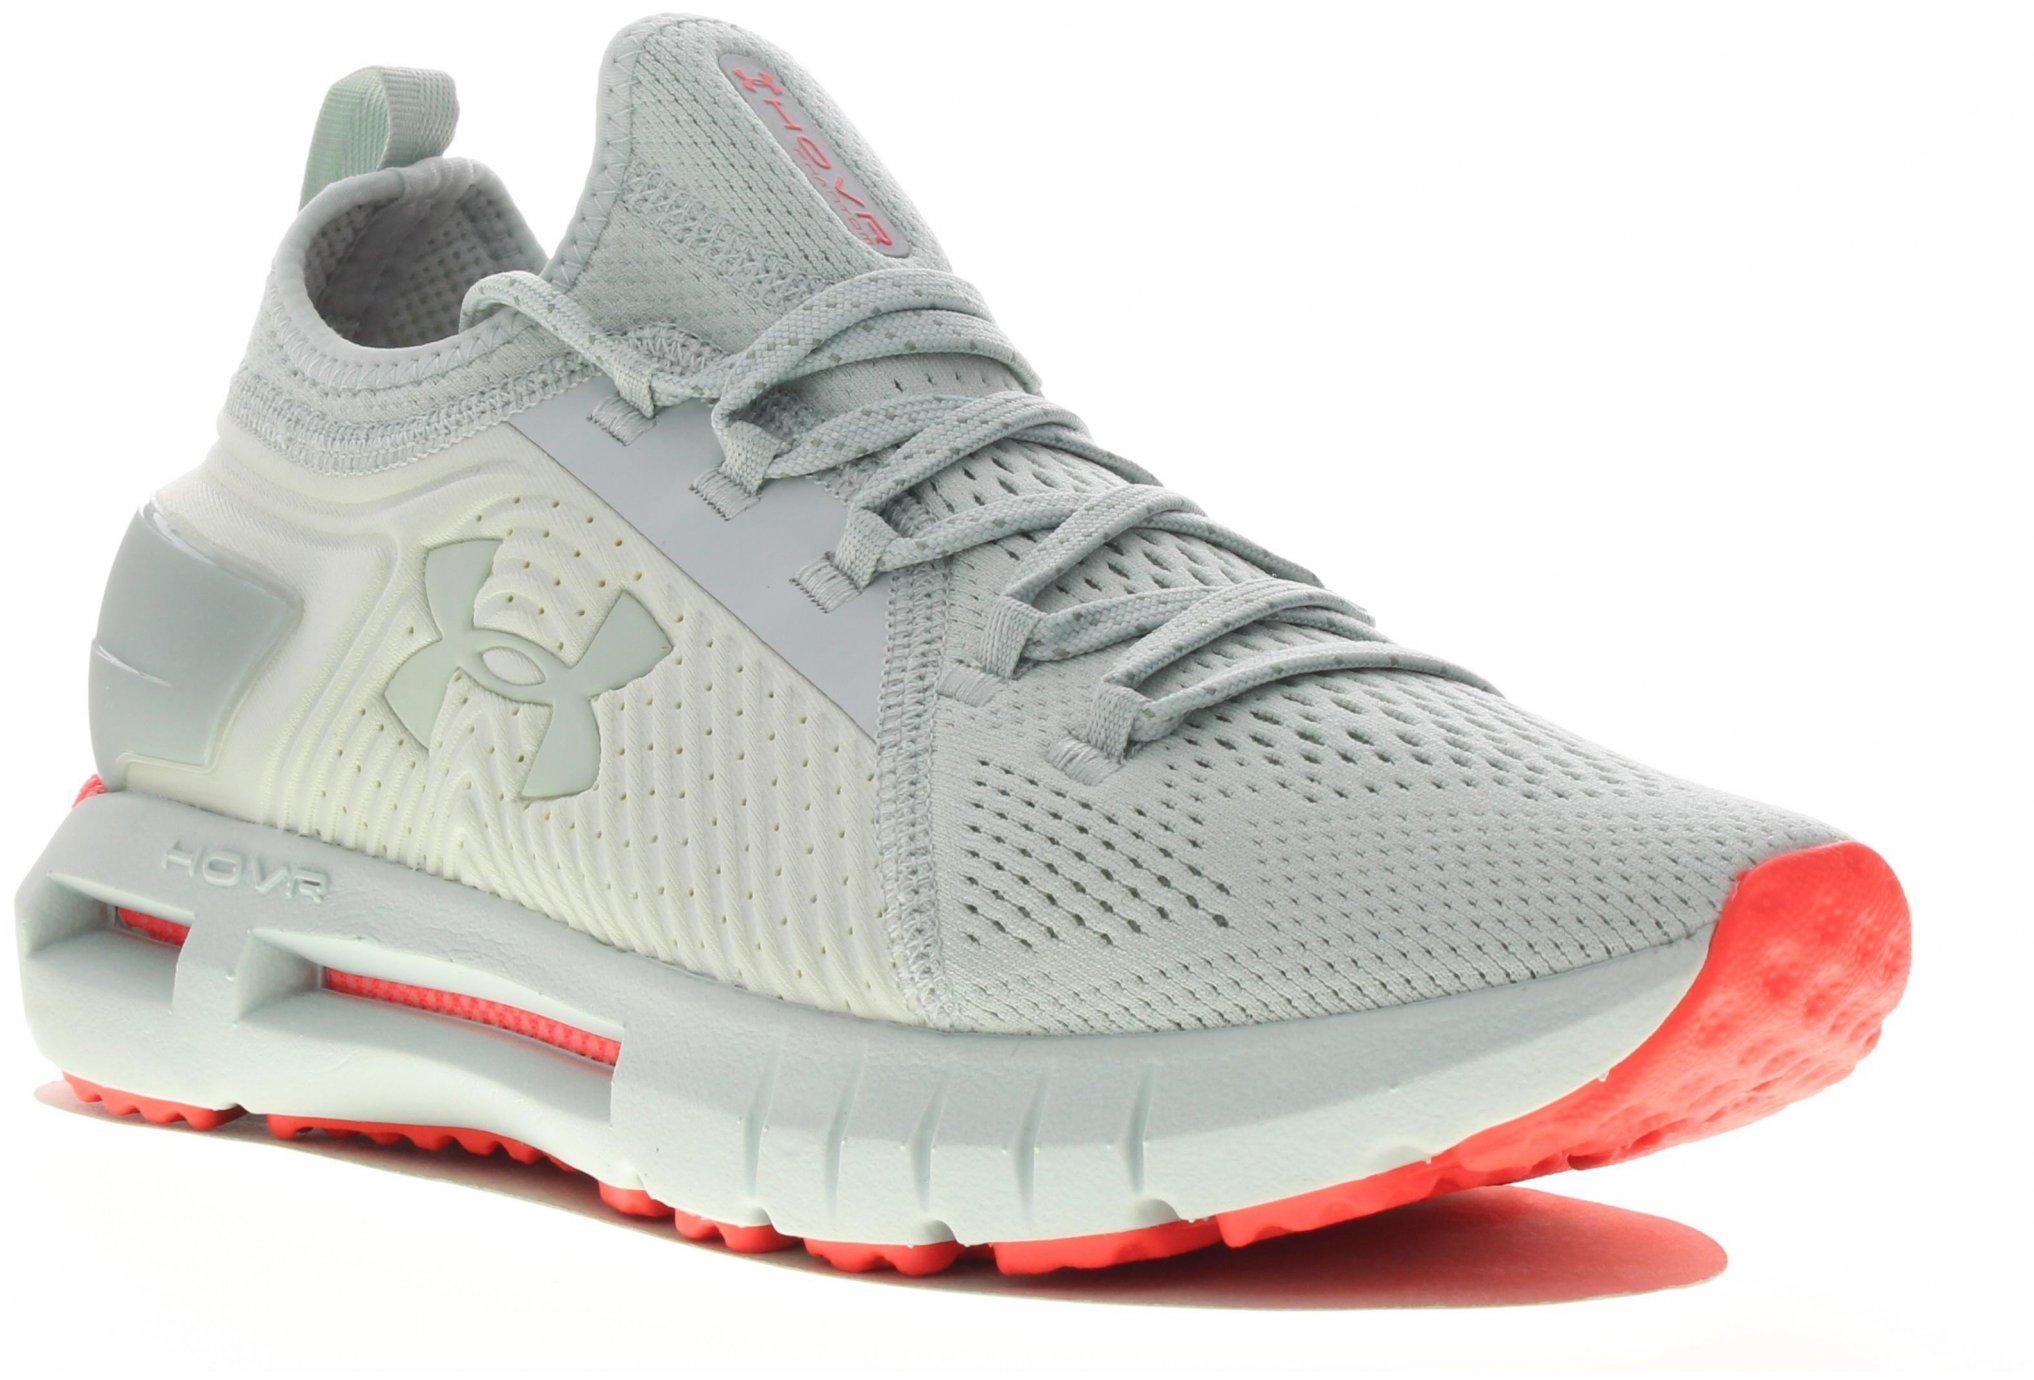 Under Armour HOVR Phantom SE Chaussures running femme